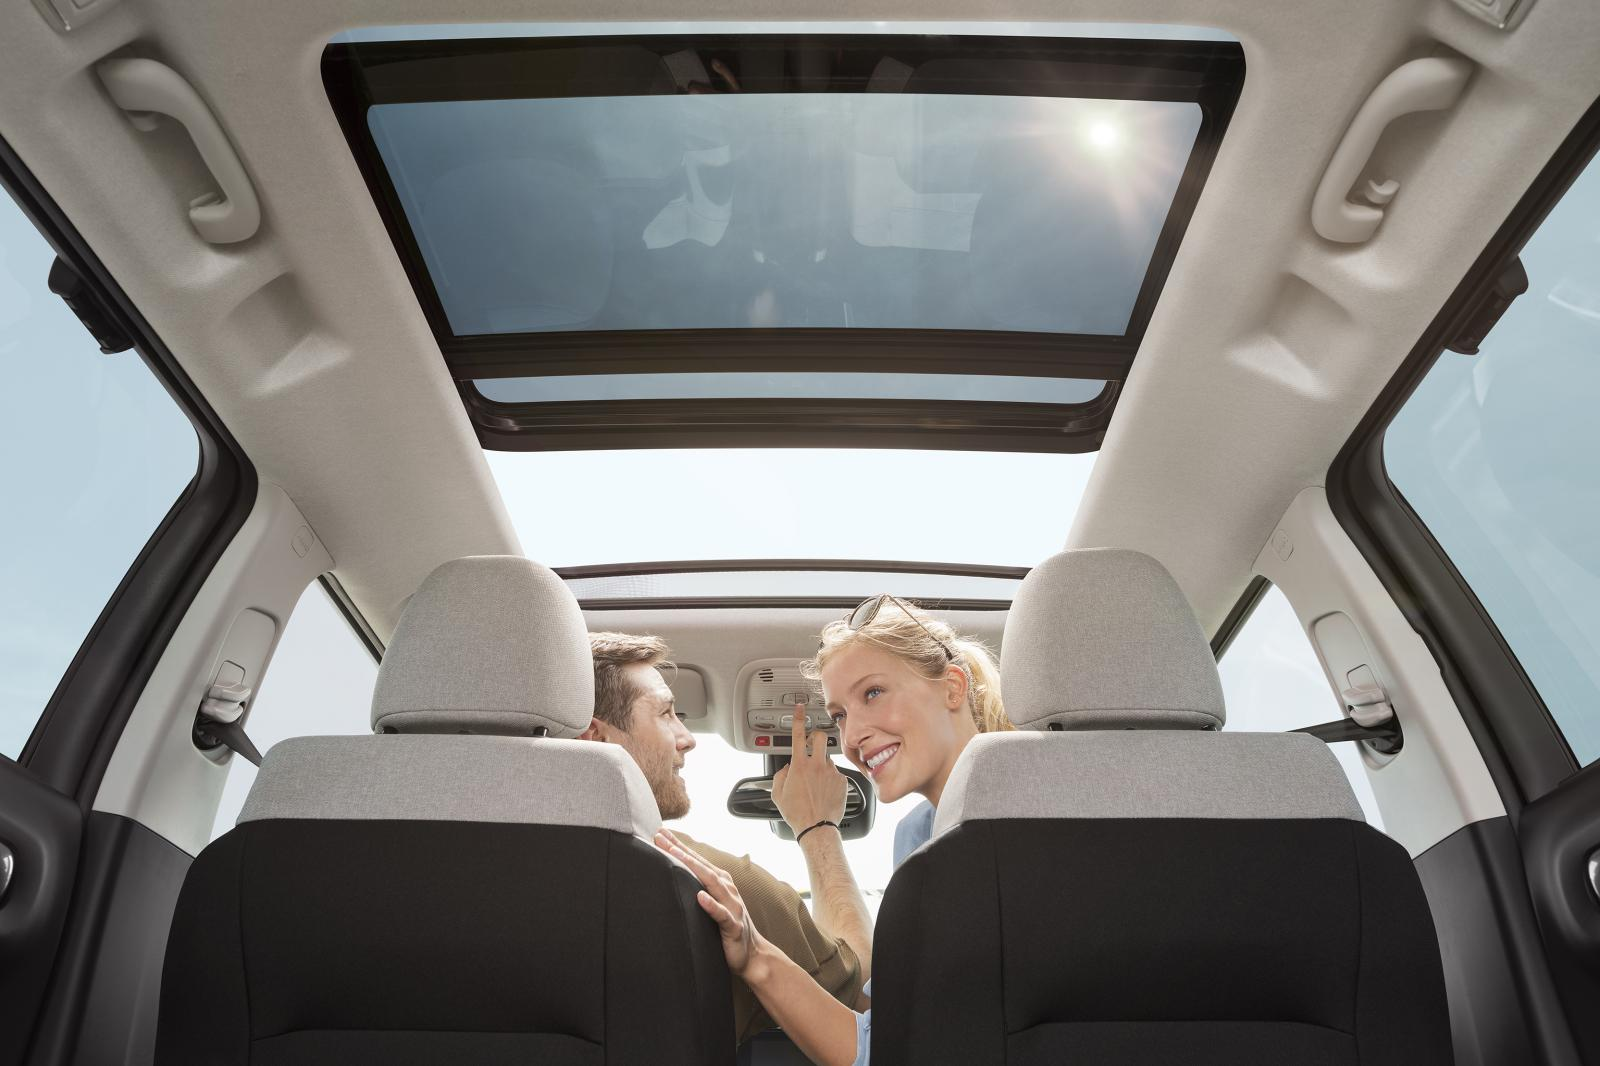 C3 Aircross Compact SUV -  Sunroof